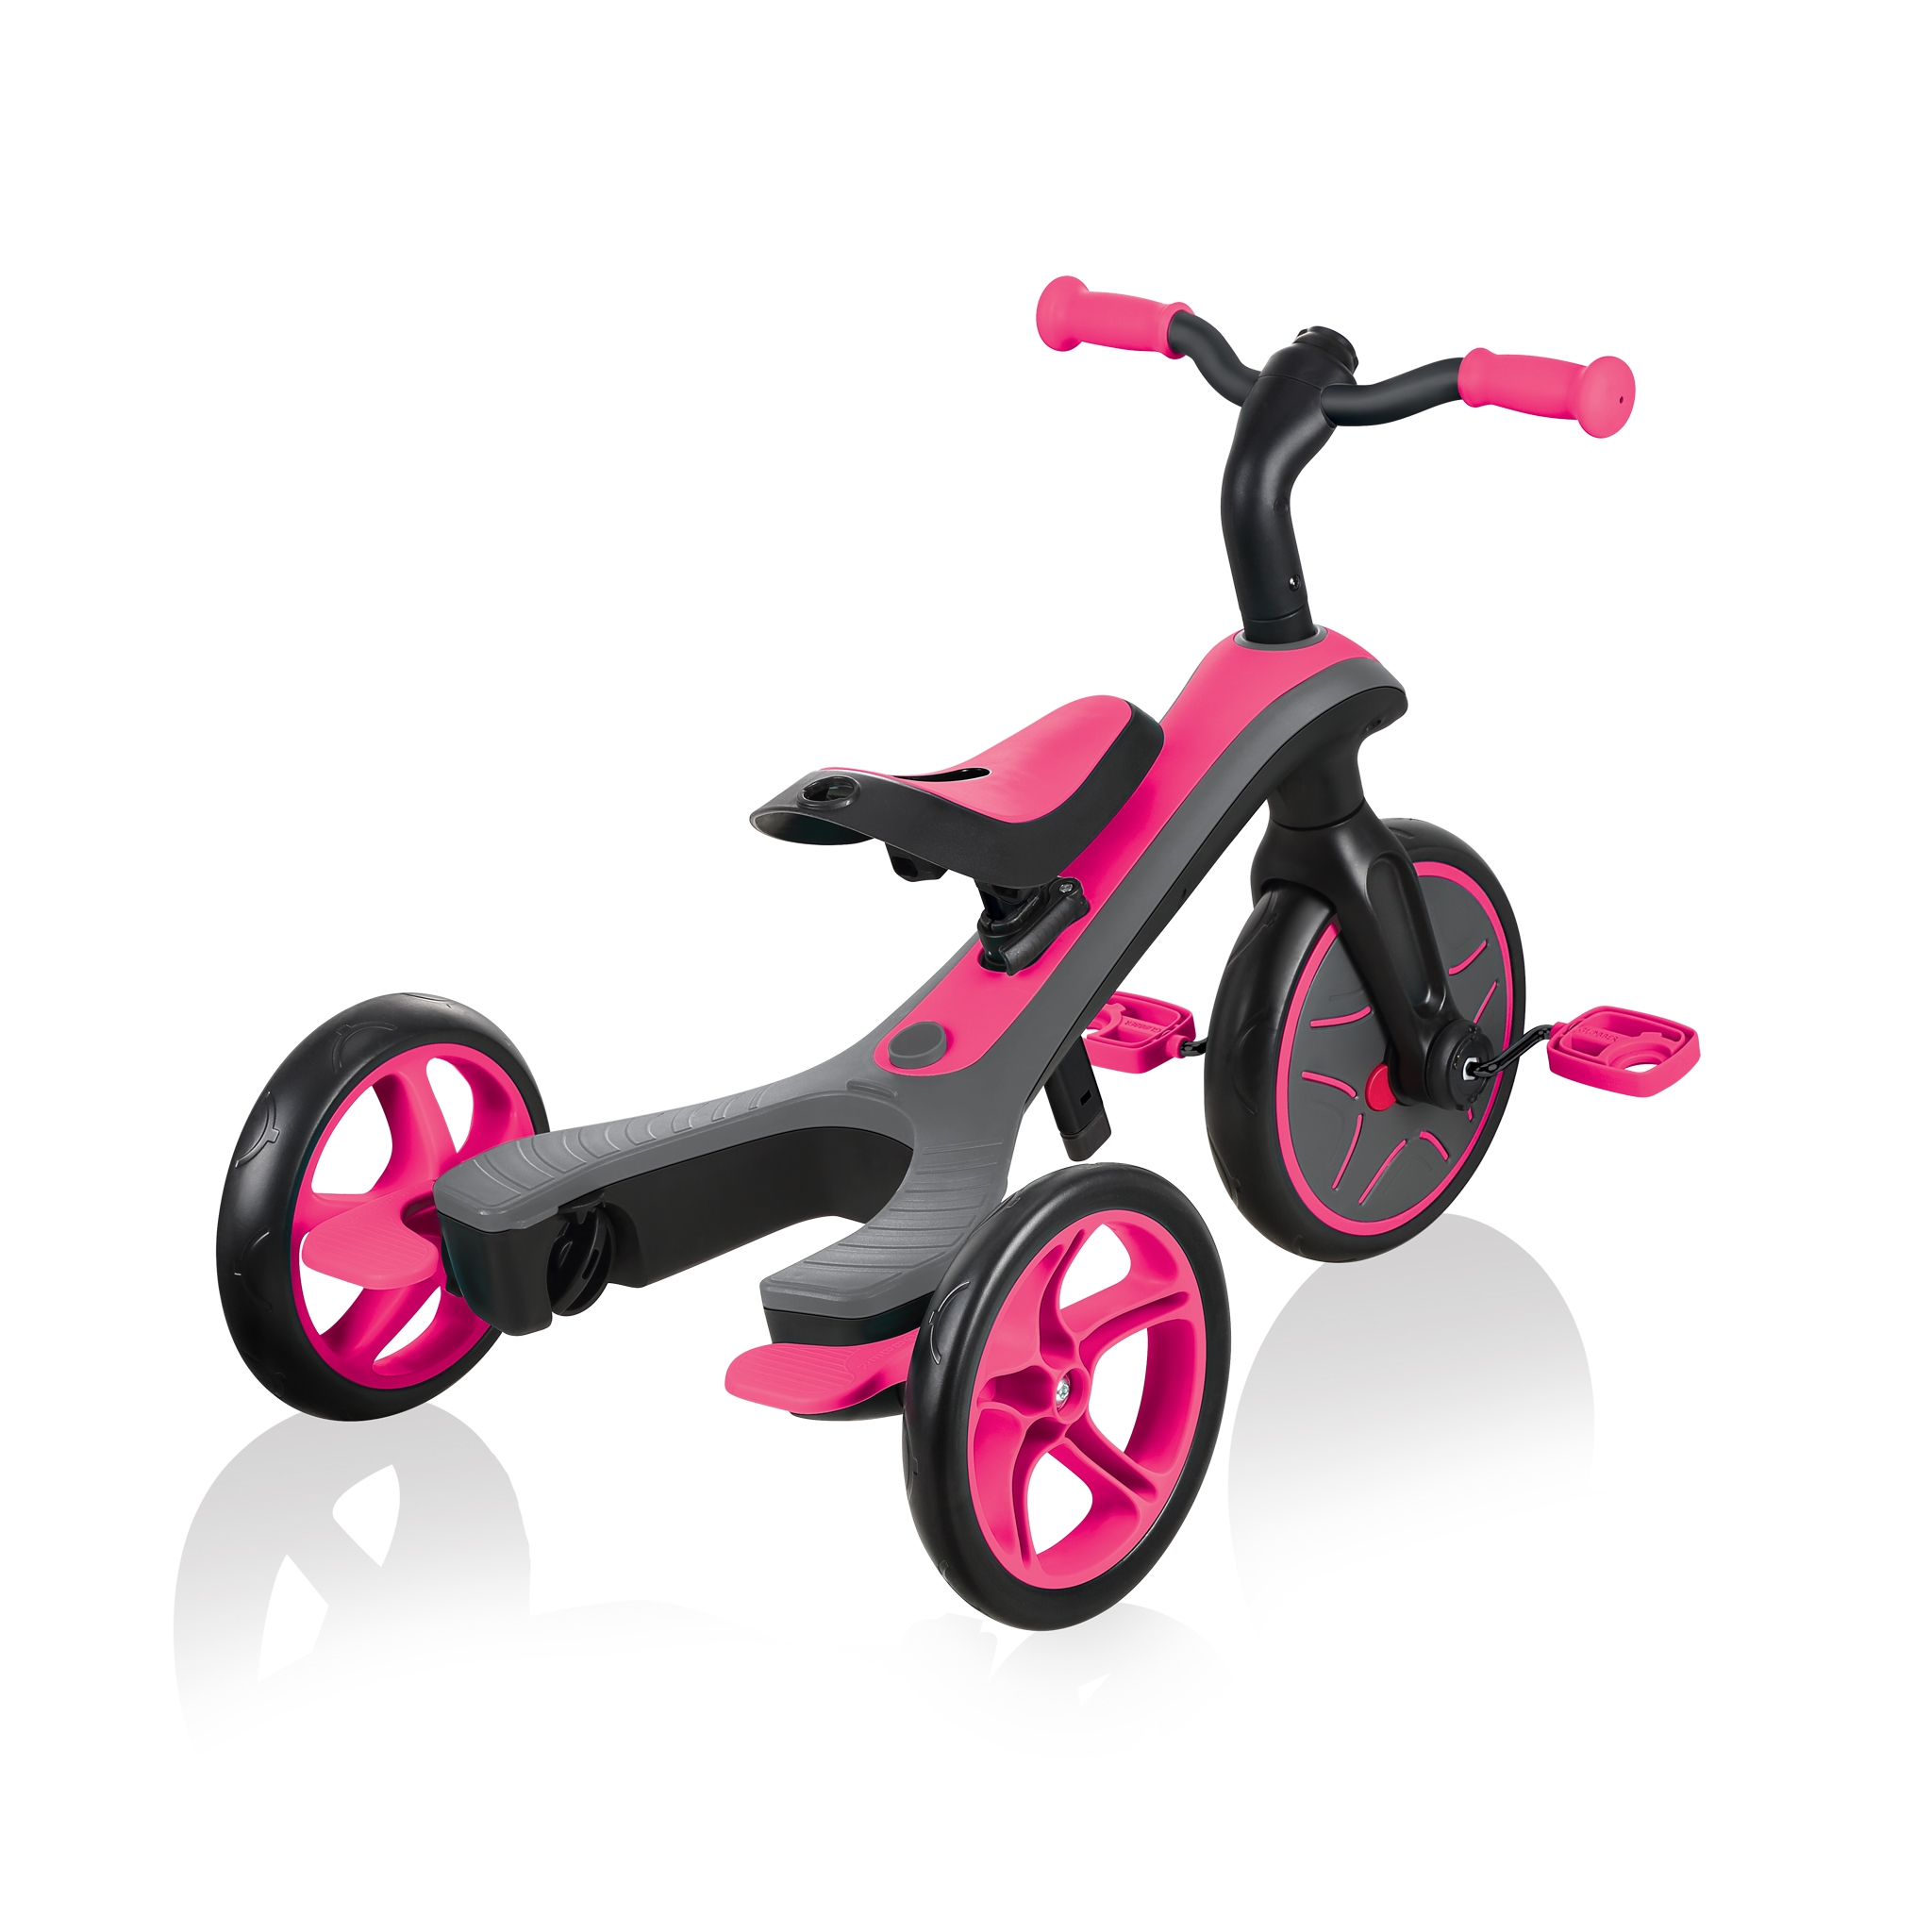 Globber-EXPLORER-TRIKE-4in1-all-in-one-baby-tricycle-and-kids-balance-bike-with-patented-wheel-mechanism-transformation 7